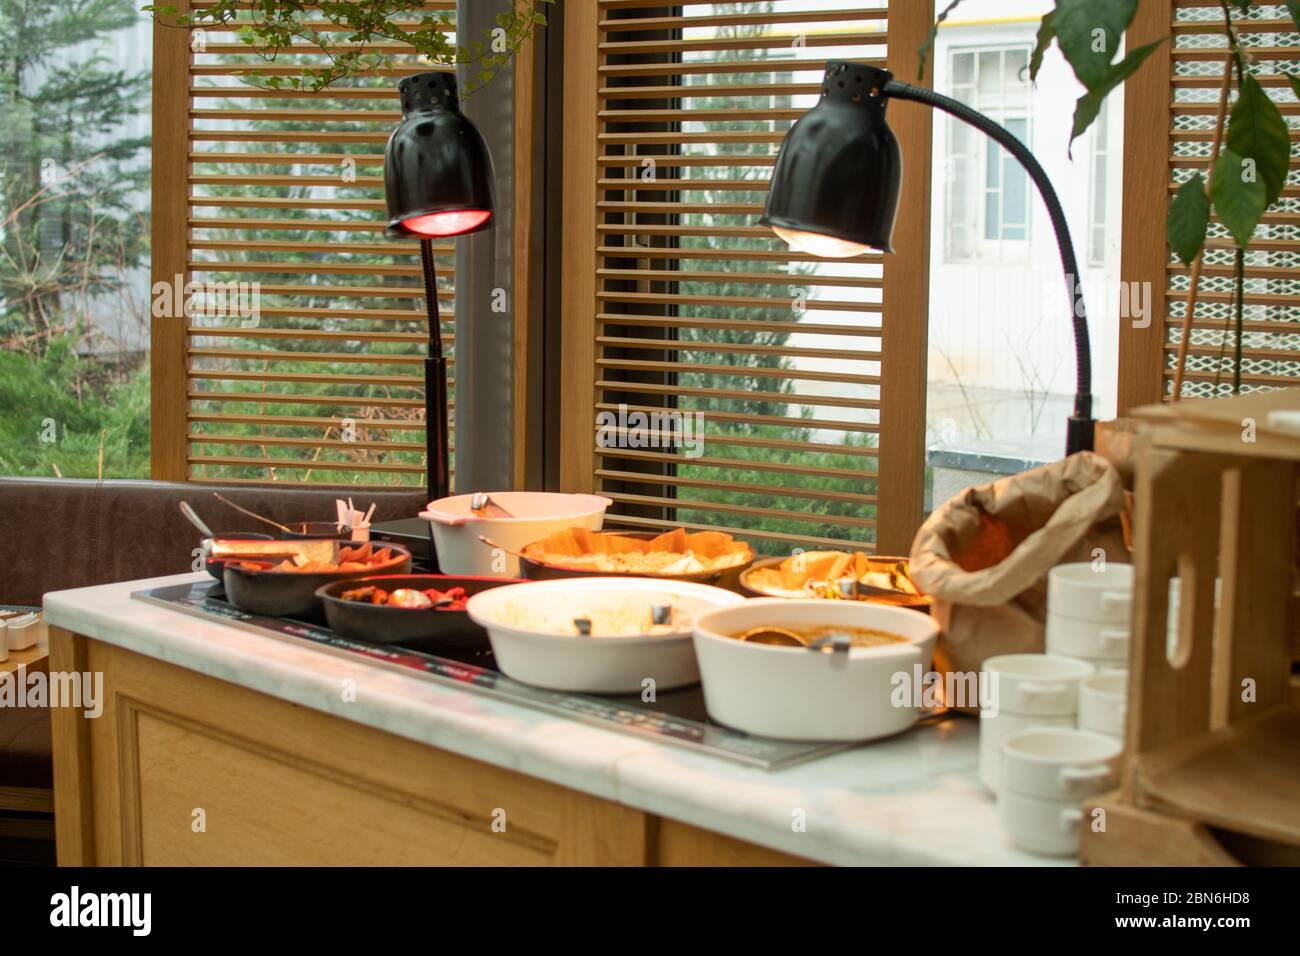 Live Food Stations Kitchenware In The Line Catering Summer Brunch Buffet Food Luxury Hotel Outdoor Outside Garden By The Pool Al Fresco Restaurant Co Stock Photo Alamy